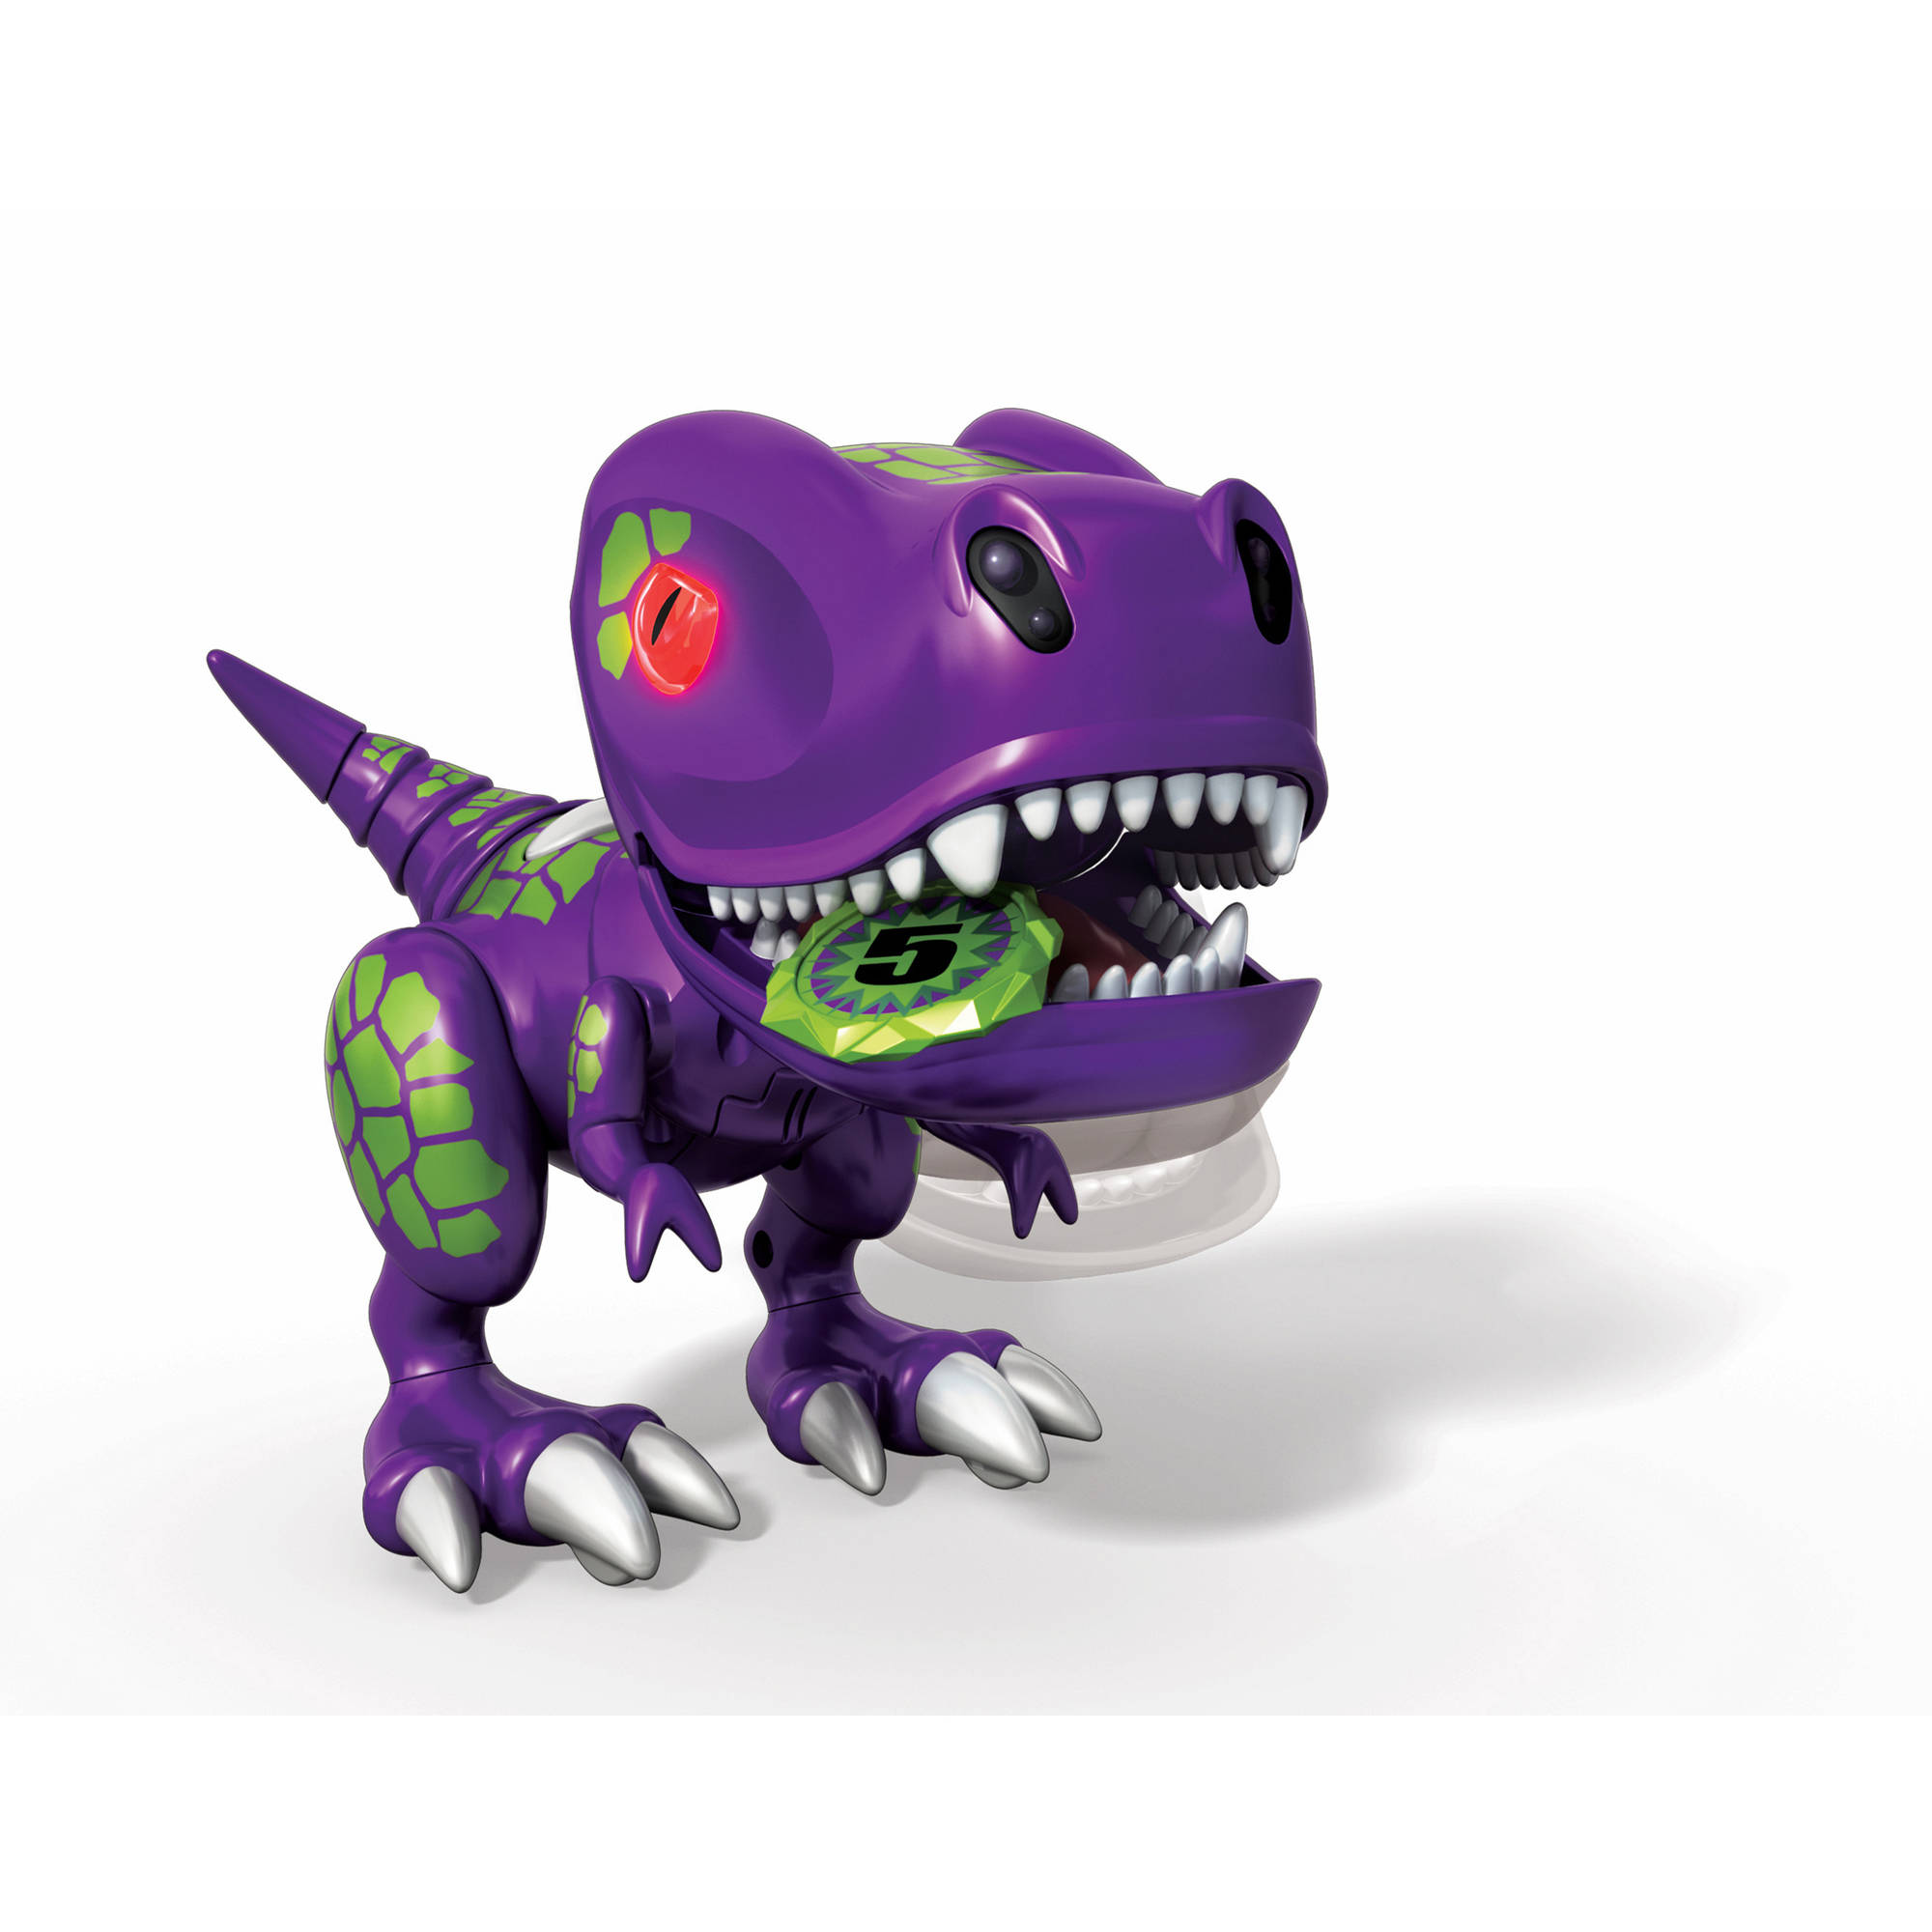 Zoomer Chomplingz Dinosaur, Chance, Wal-Mart Exclusive by PACIFIC INDUSTRIES (ZHONGSHAN) LTD